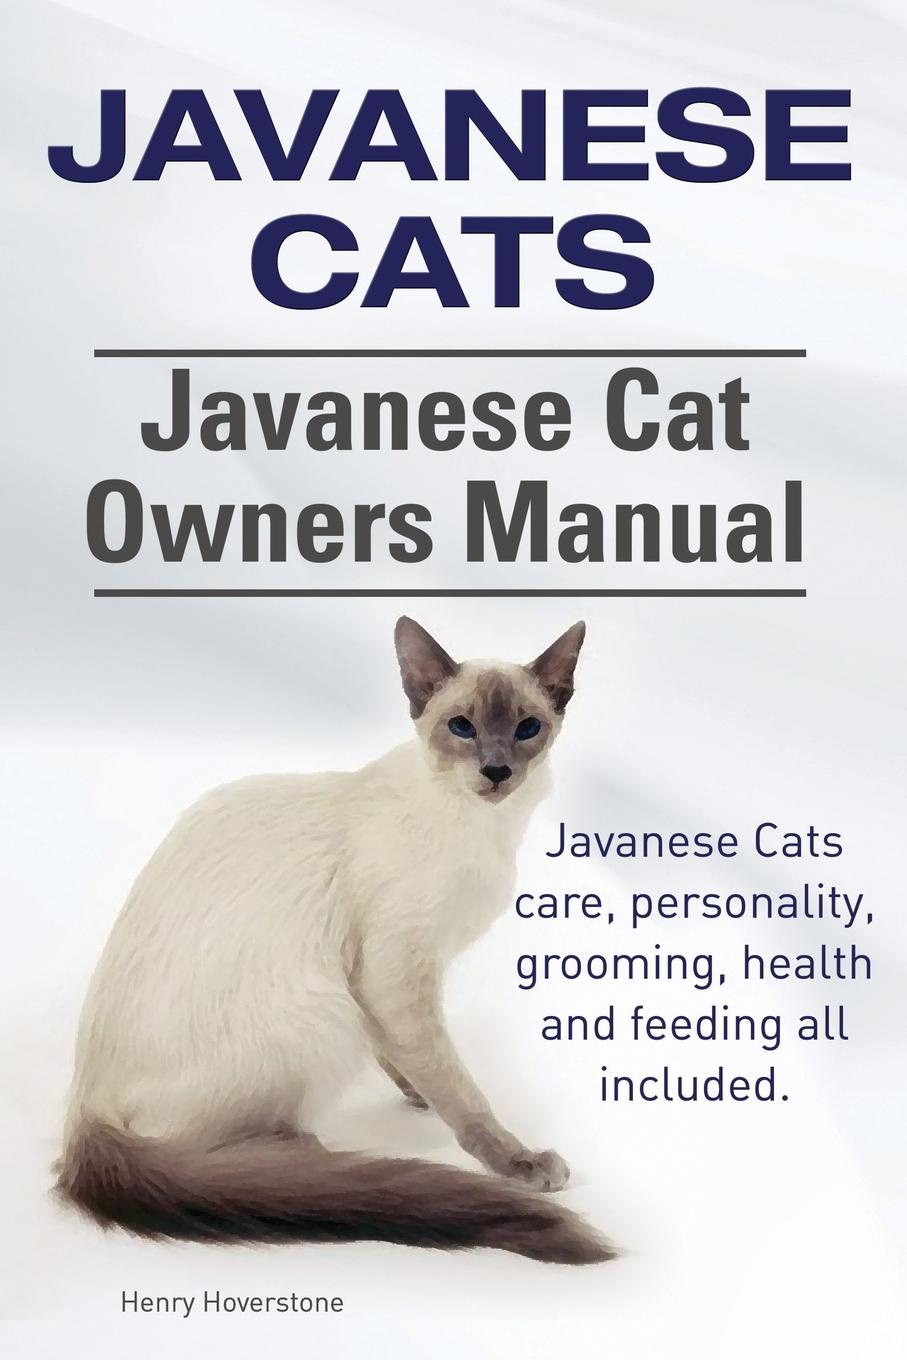 Henry Hoverstone Javanese Cats. Javanese Cat Owners Manual. Javanese Cats care, personality, grooming, health and feeding all included. the eyes of the cat